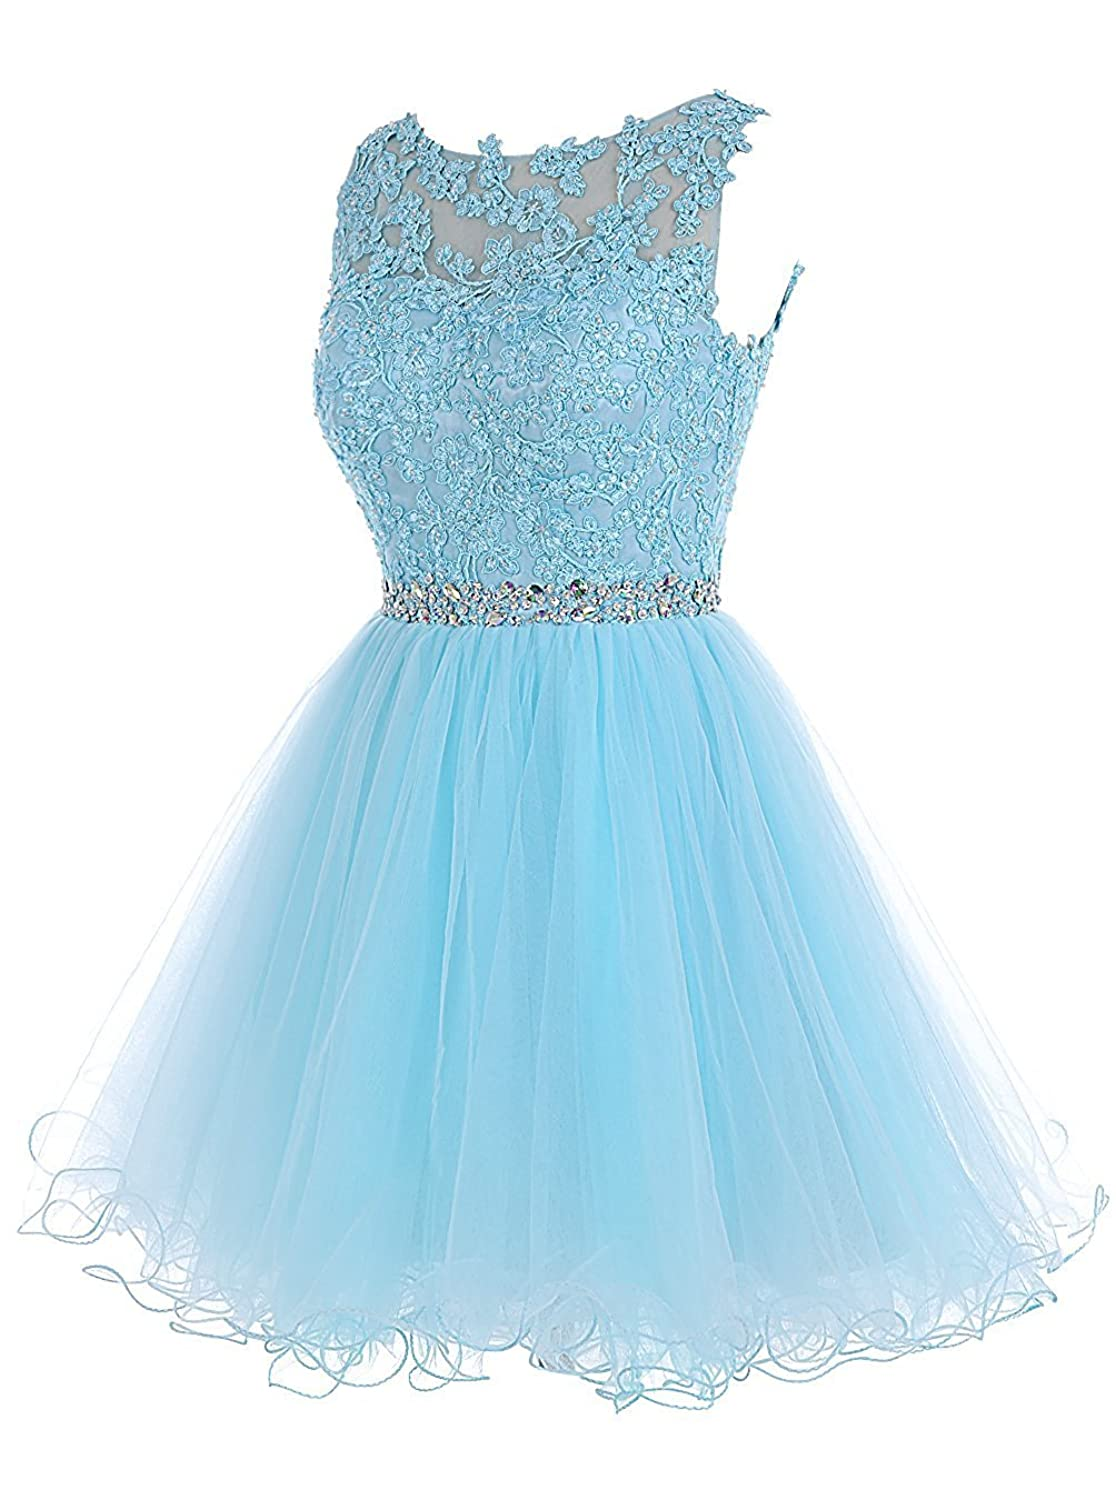 New Sposa Short Beaded Homecoming Dresses Tulle Applique Prom ...